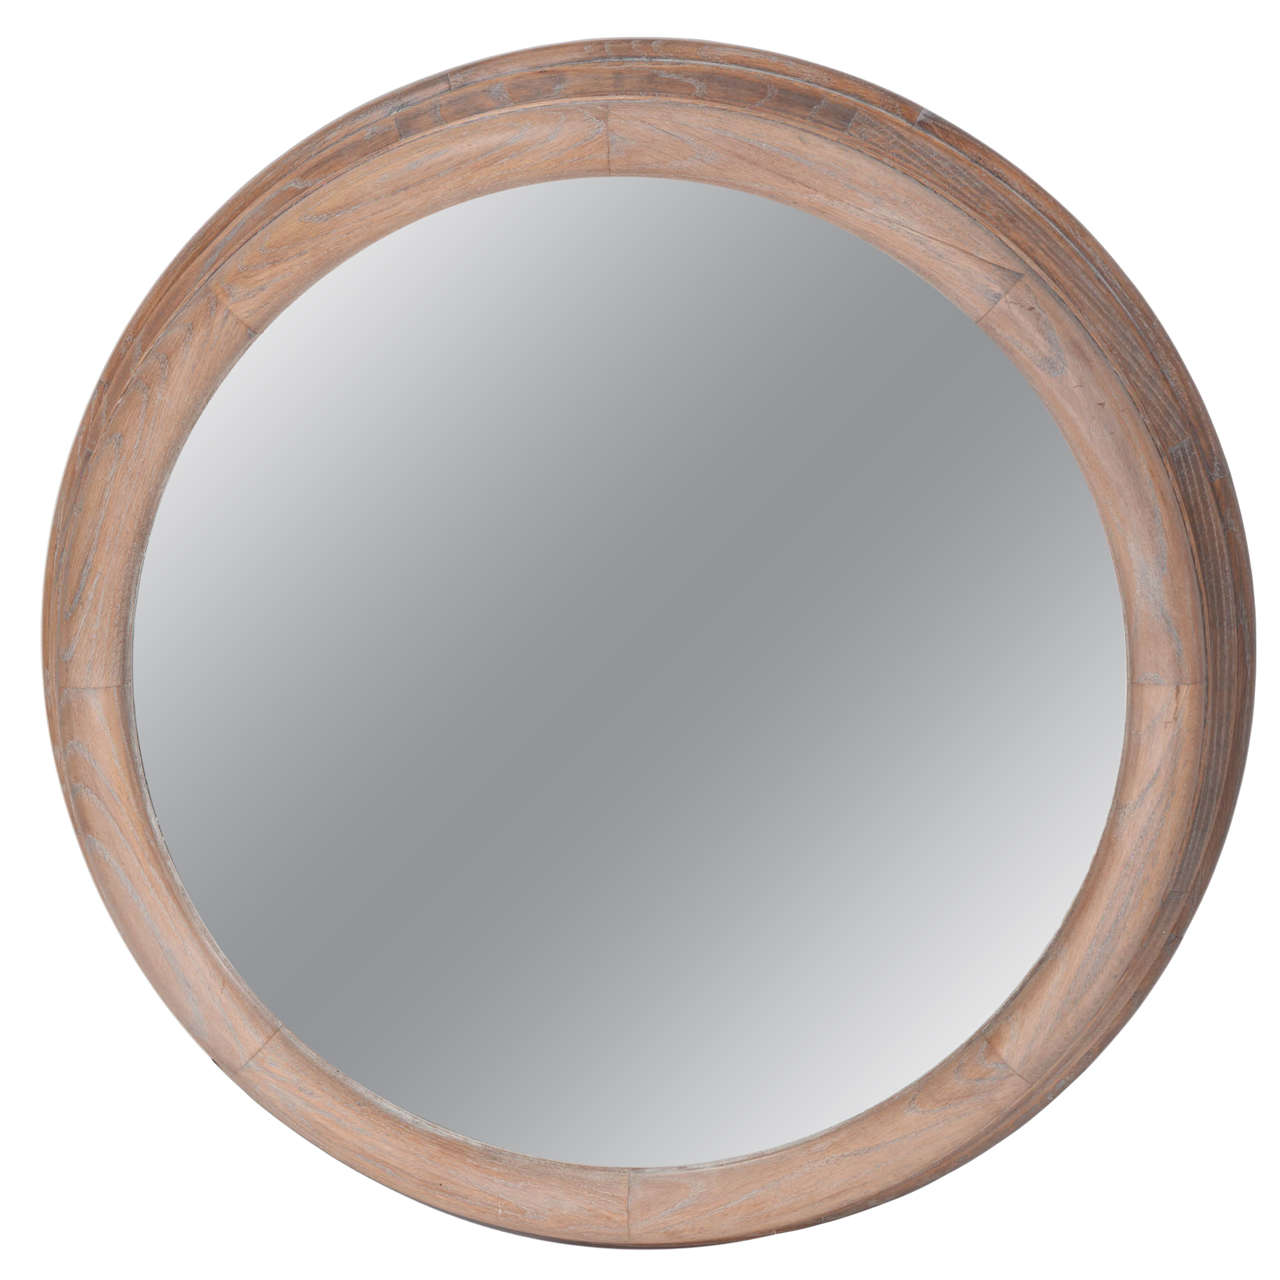 Vintage bleached oak round wall mirror at 1stdibs vintage bleached oak round wall mirror 1 amipublicfo Images